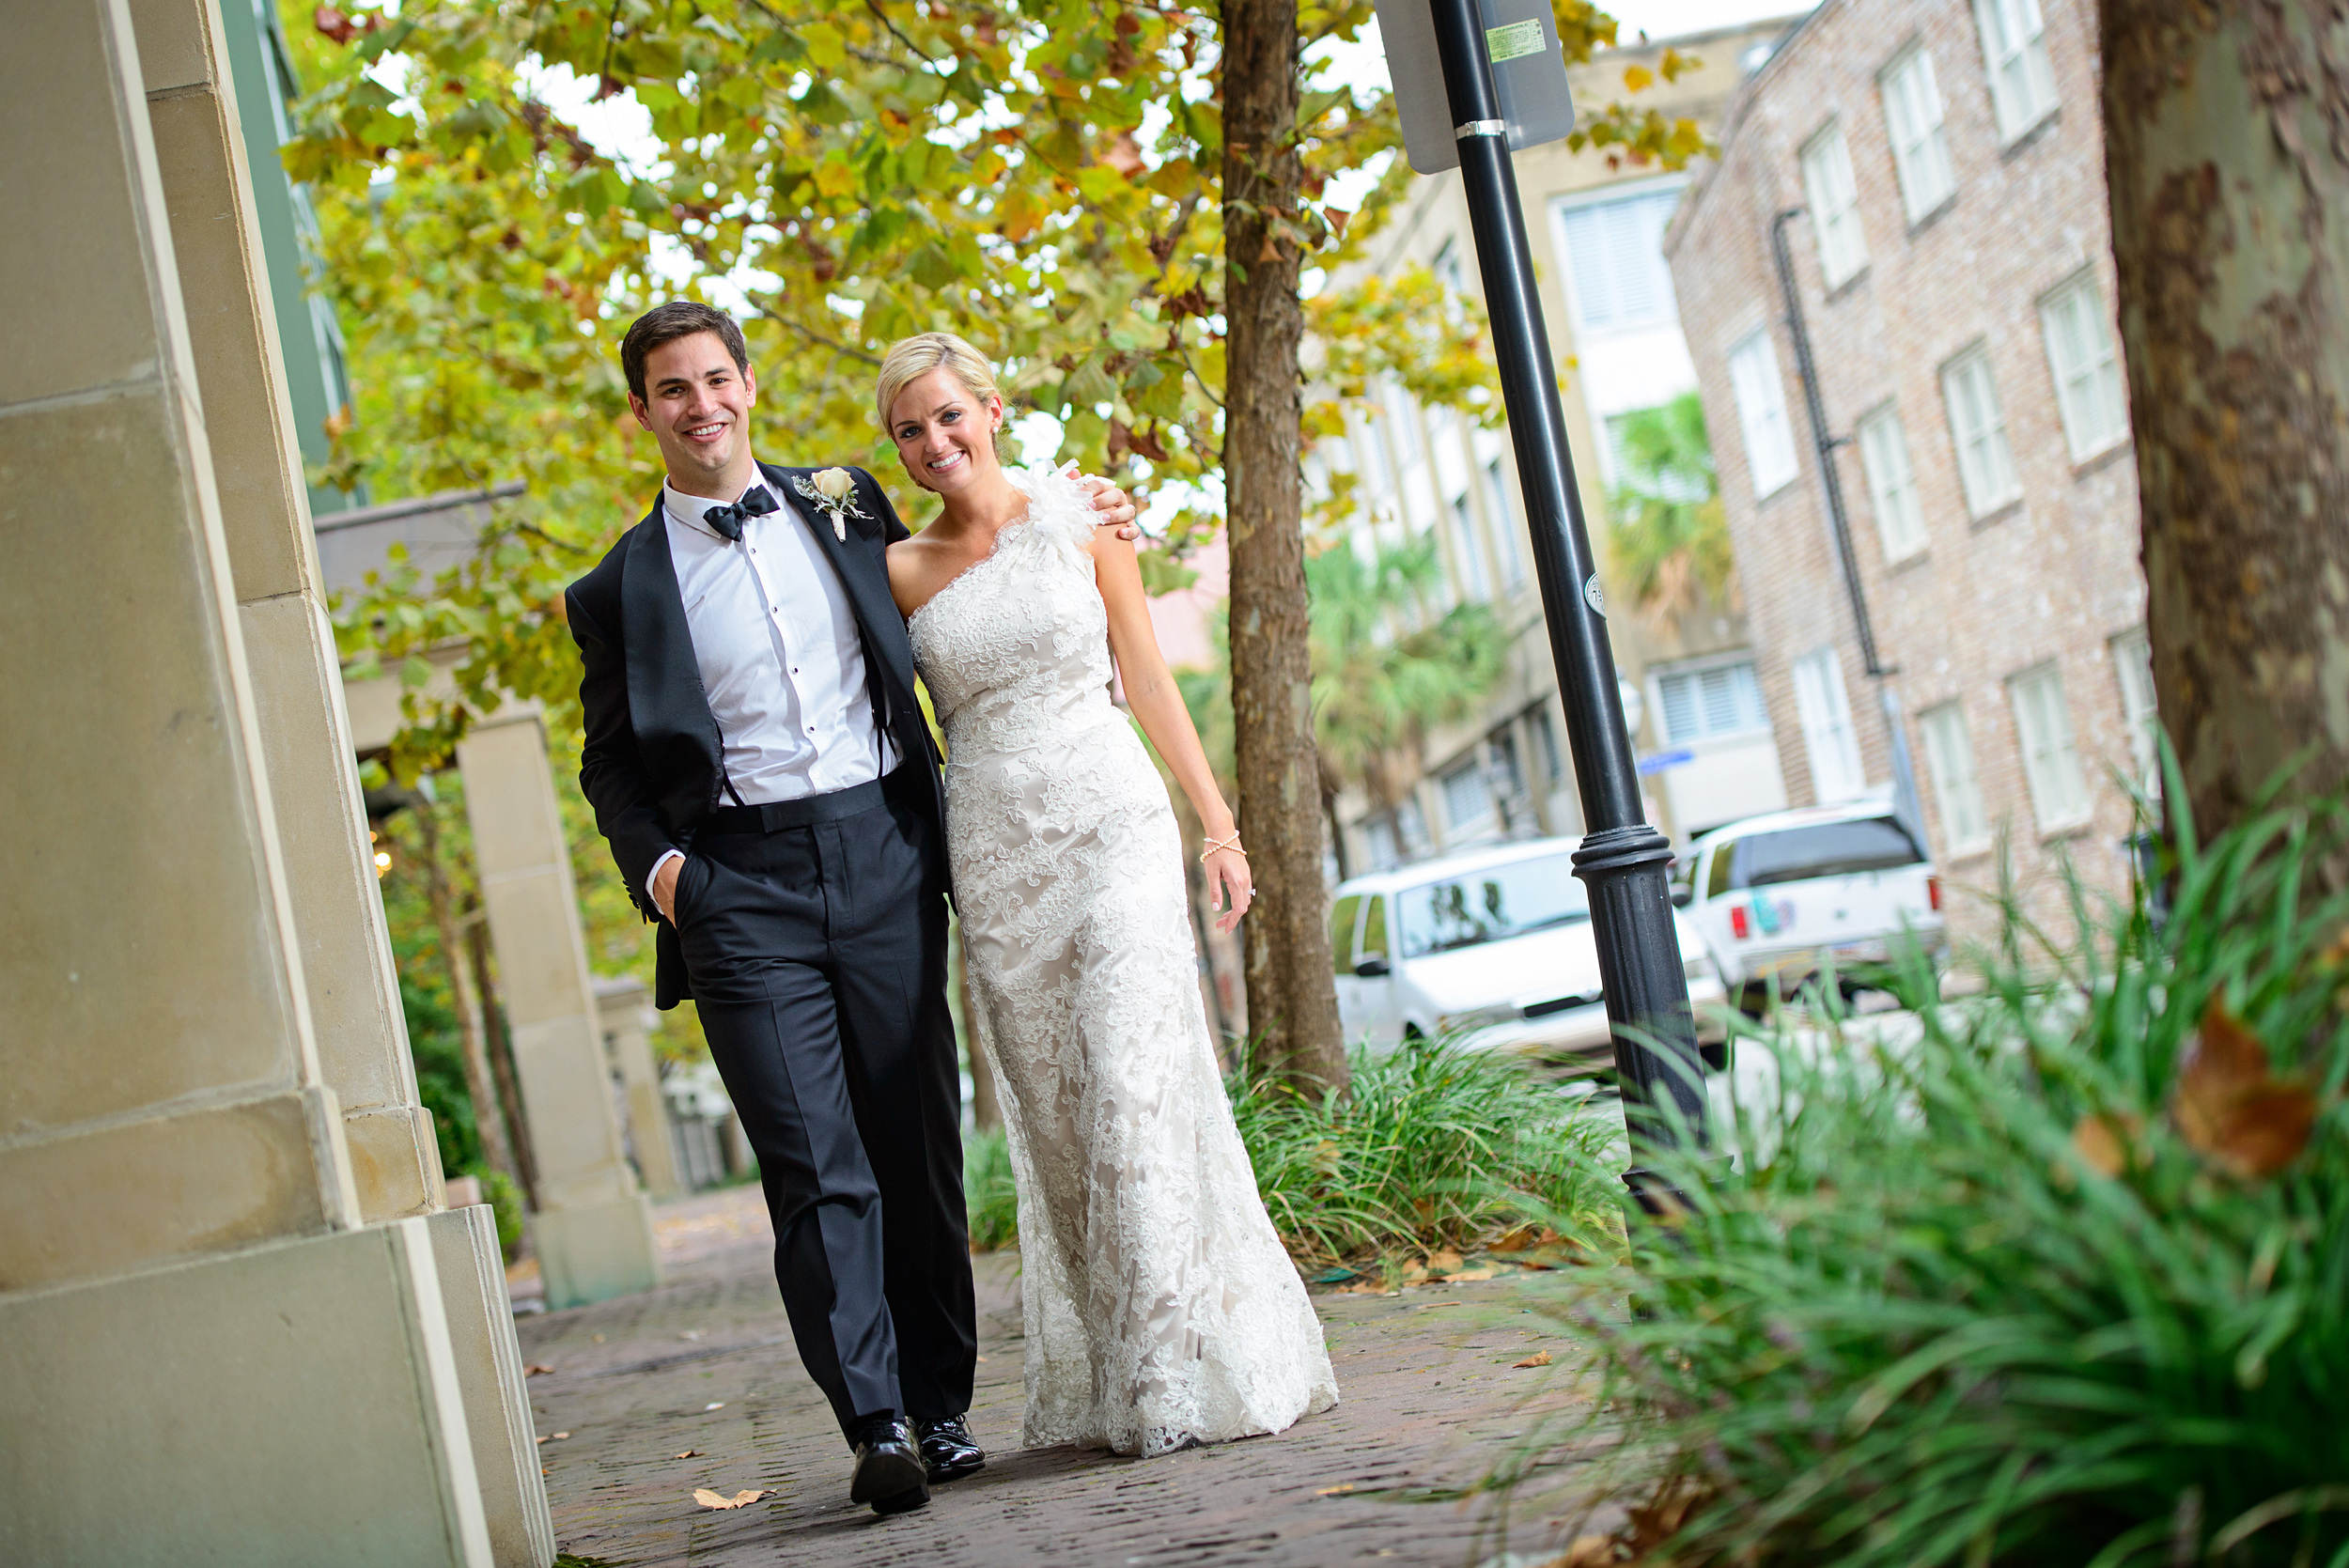 charleston_wedding_photographer (17).jpg